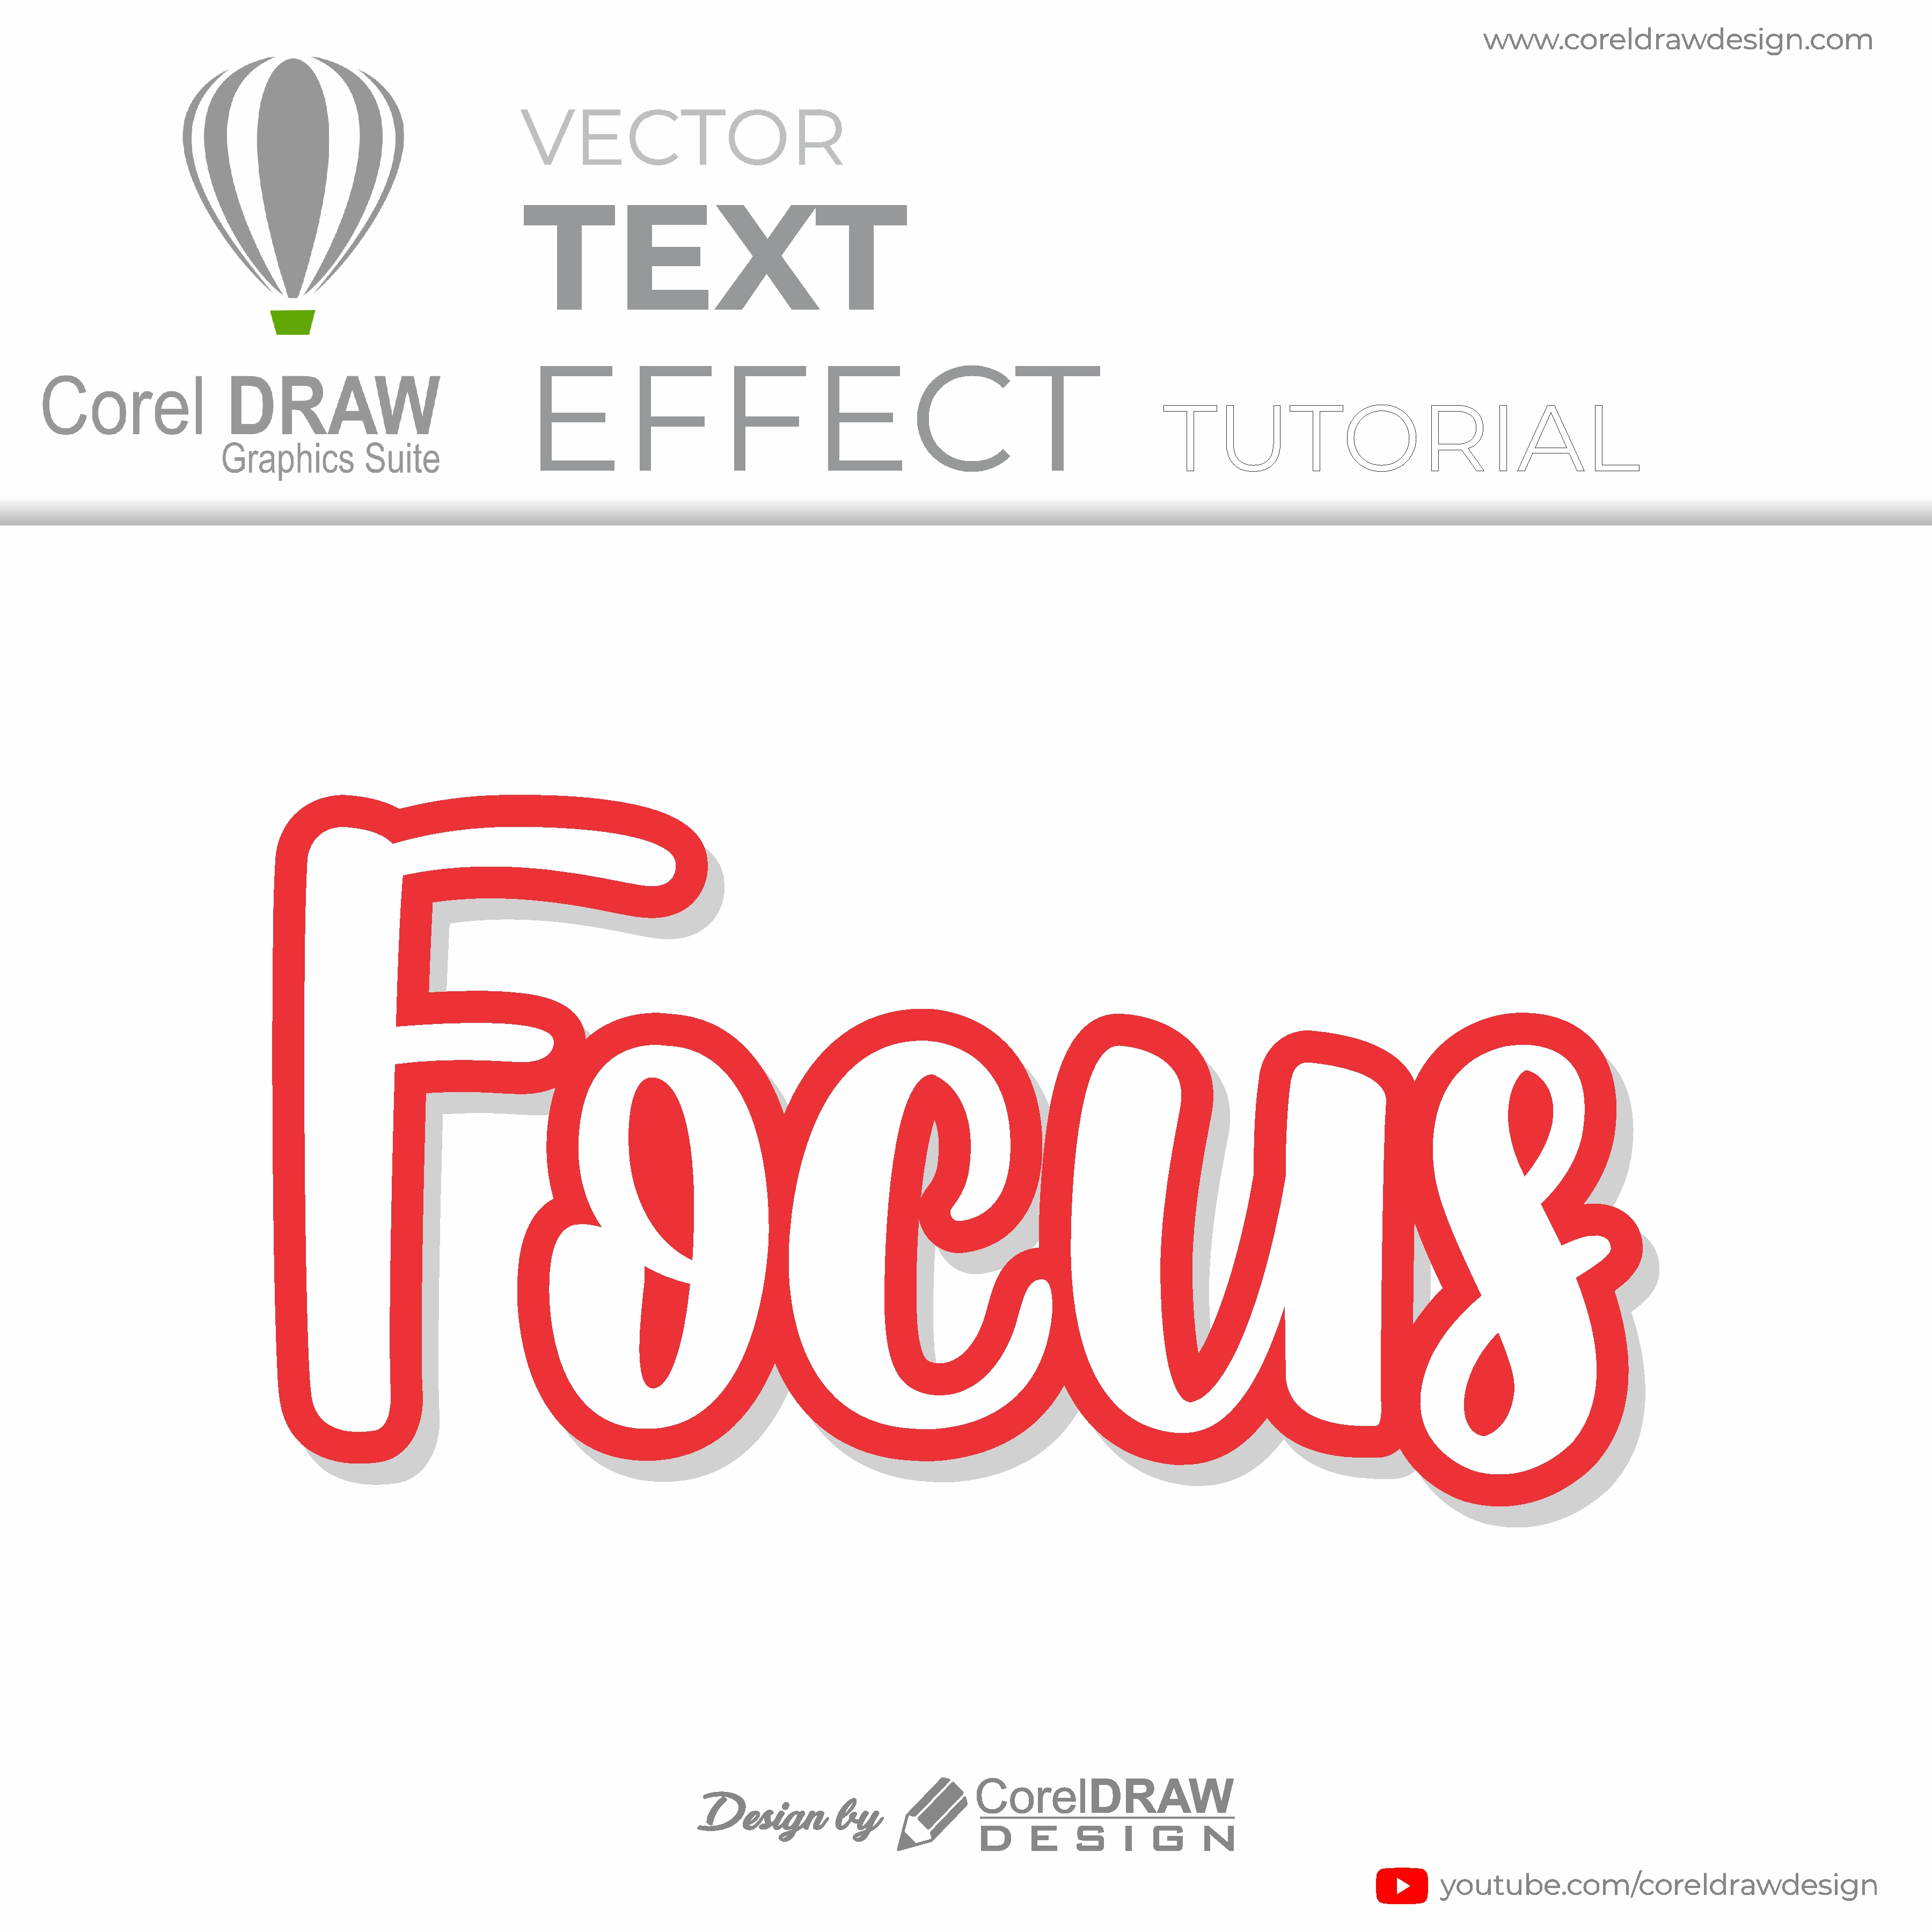 Coreldraw How to use contour tool easily and creatively Digital Graphics Tutorial Coreldraw